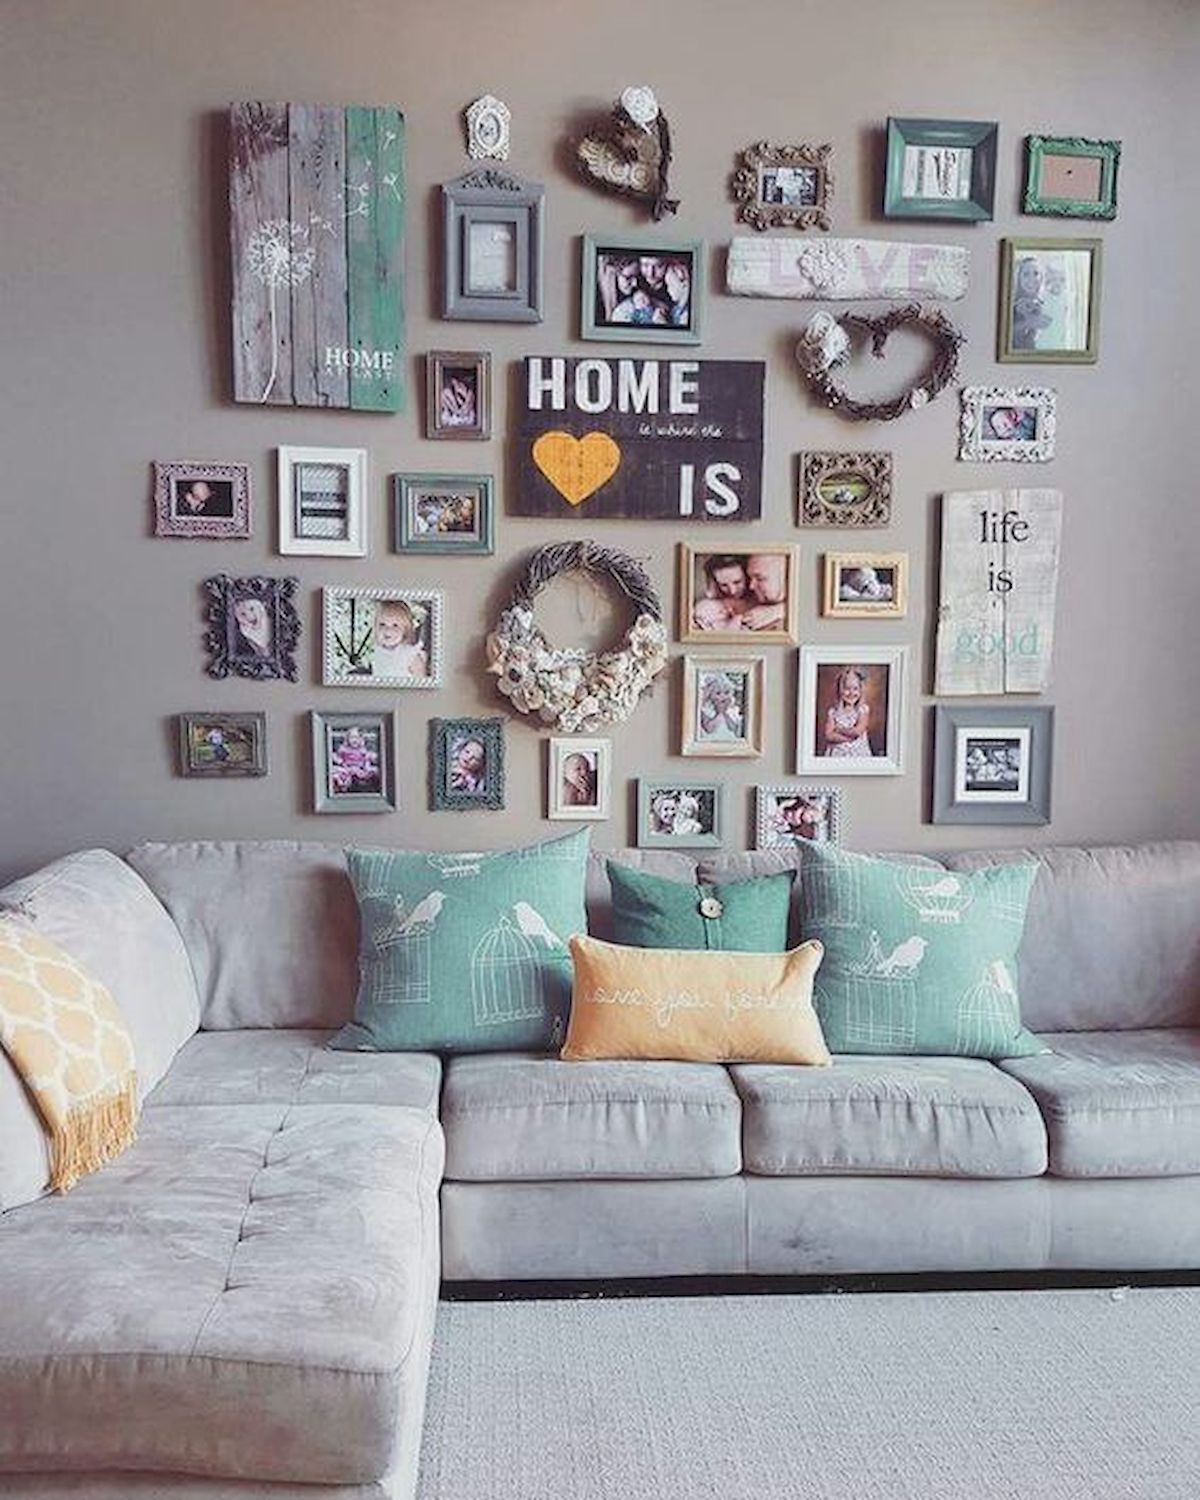 99 Diy Apartement Decorating Ideas On A Budget 23: 75 Best Farmhouse Wall Decor Ideas For Living Room (23